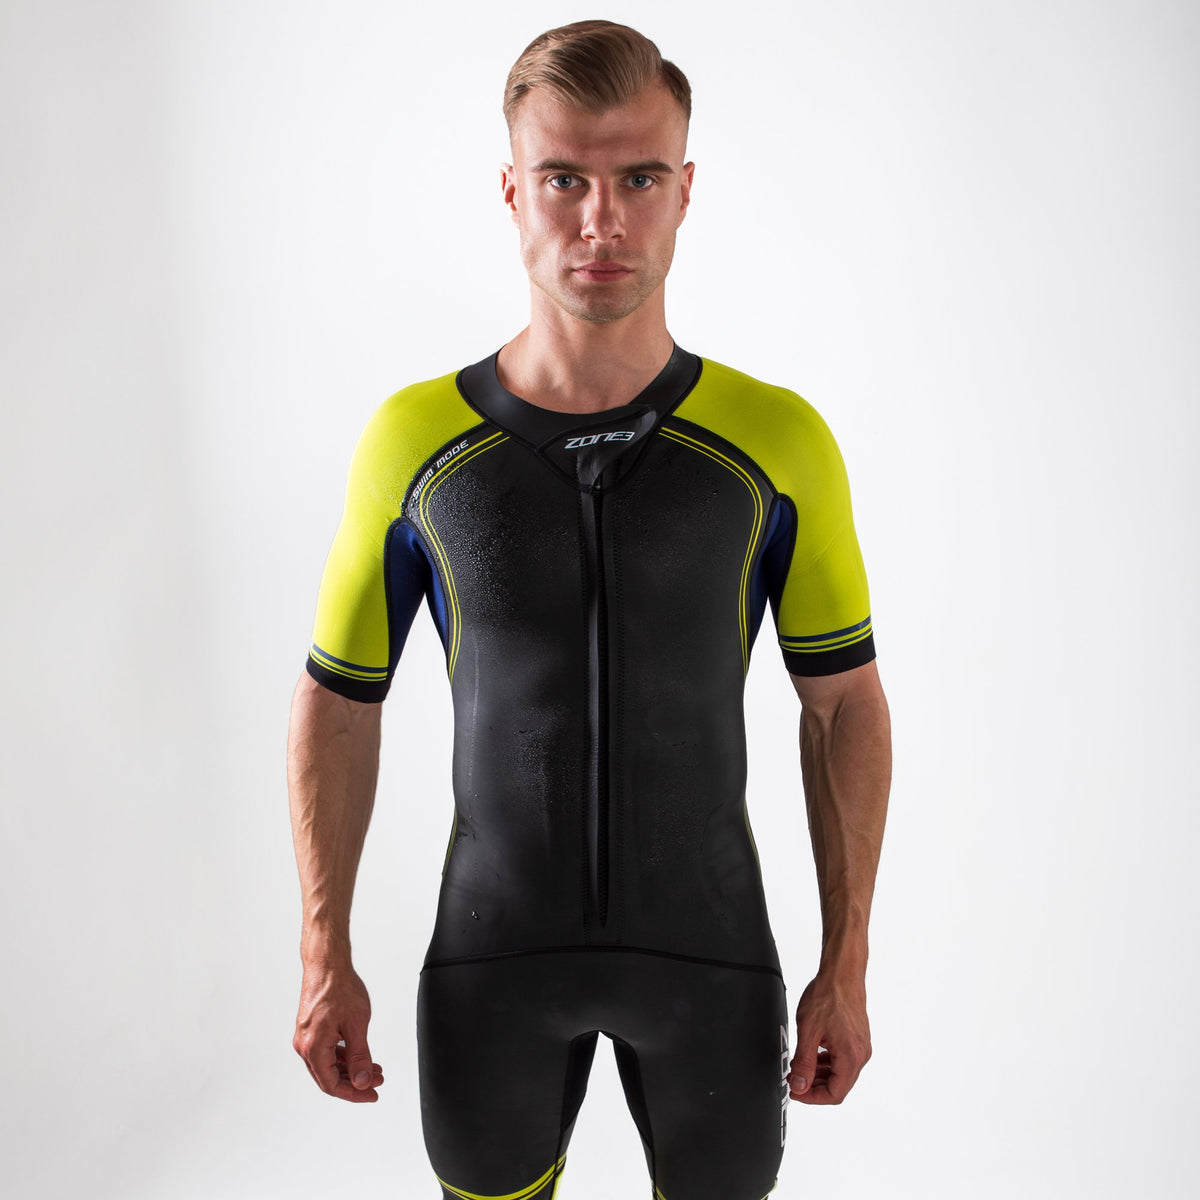 Men's Swim-Run Versa Wetsuit pose